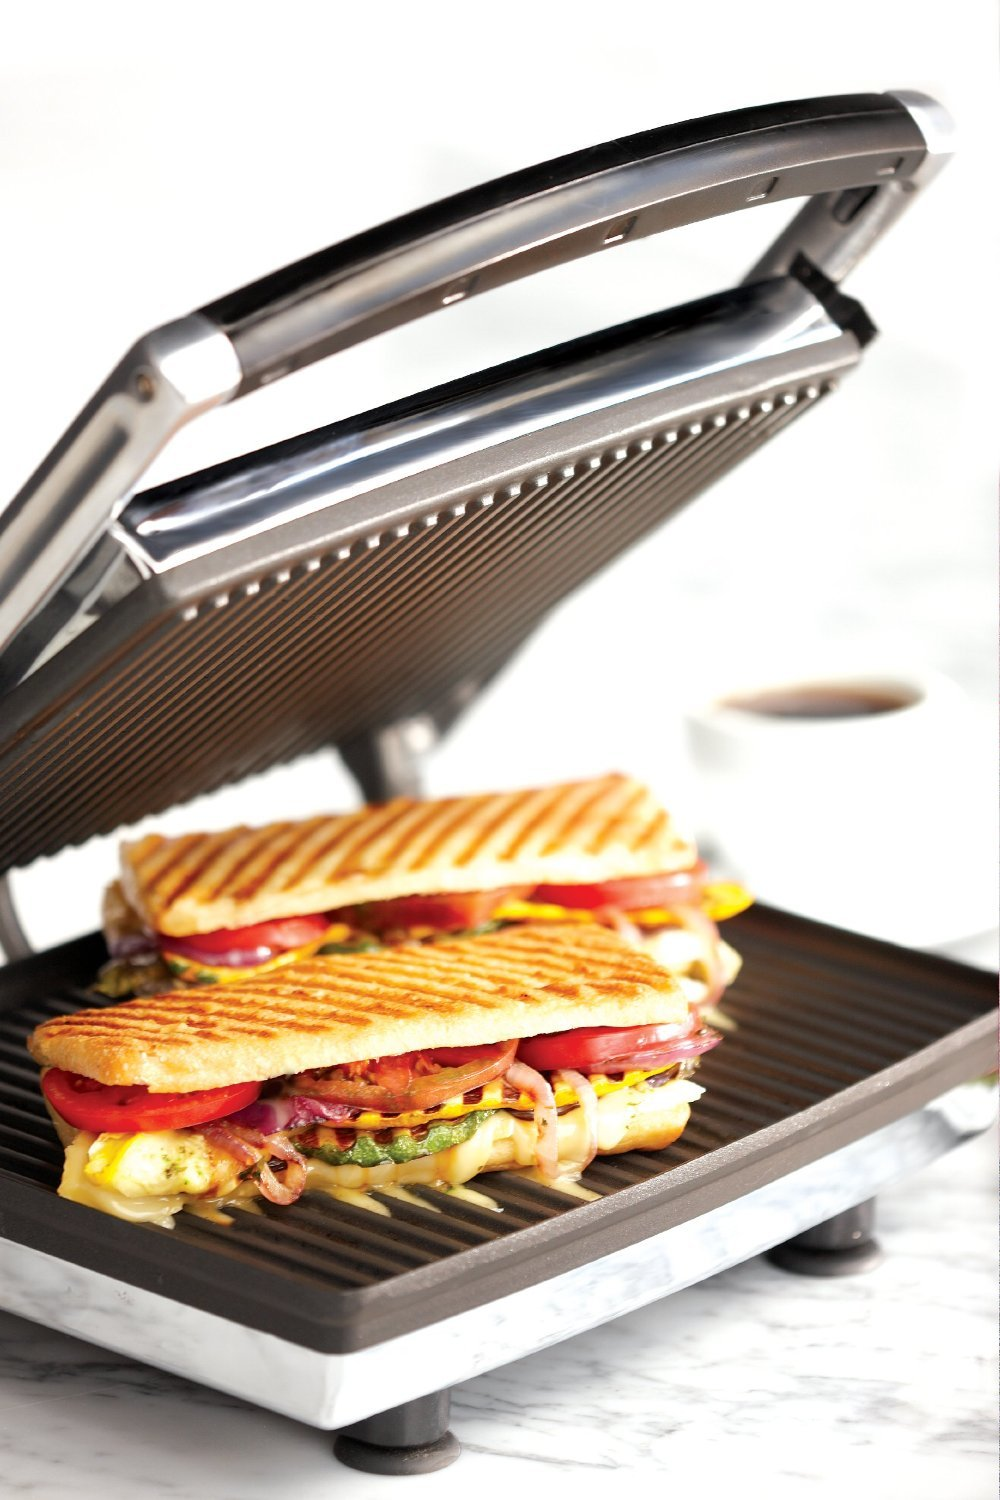 krups fde312 universal grill and panini maker review a sunny afternoon. Black Bedroom Furniture Sets. Home Design Ideas